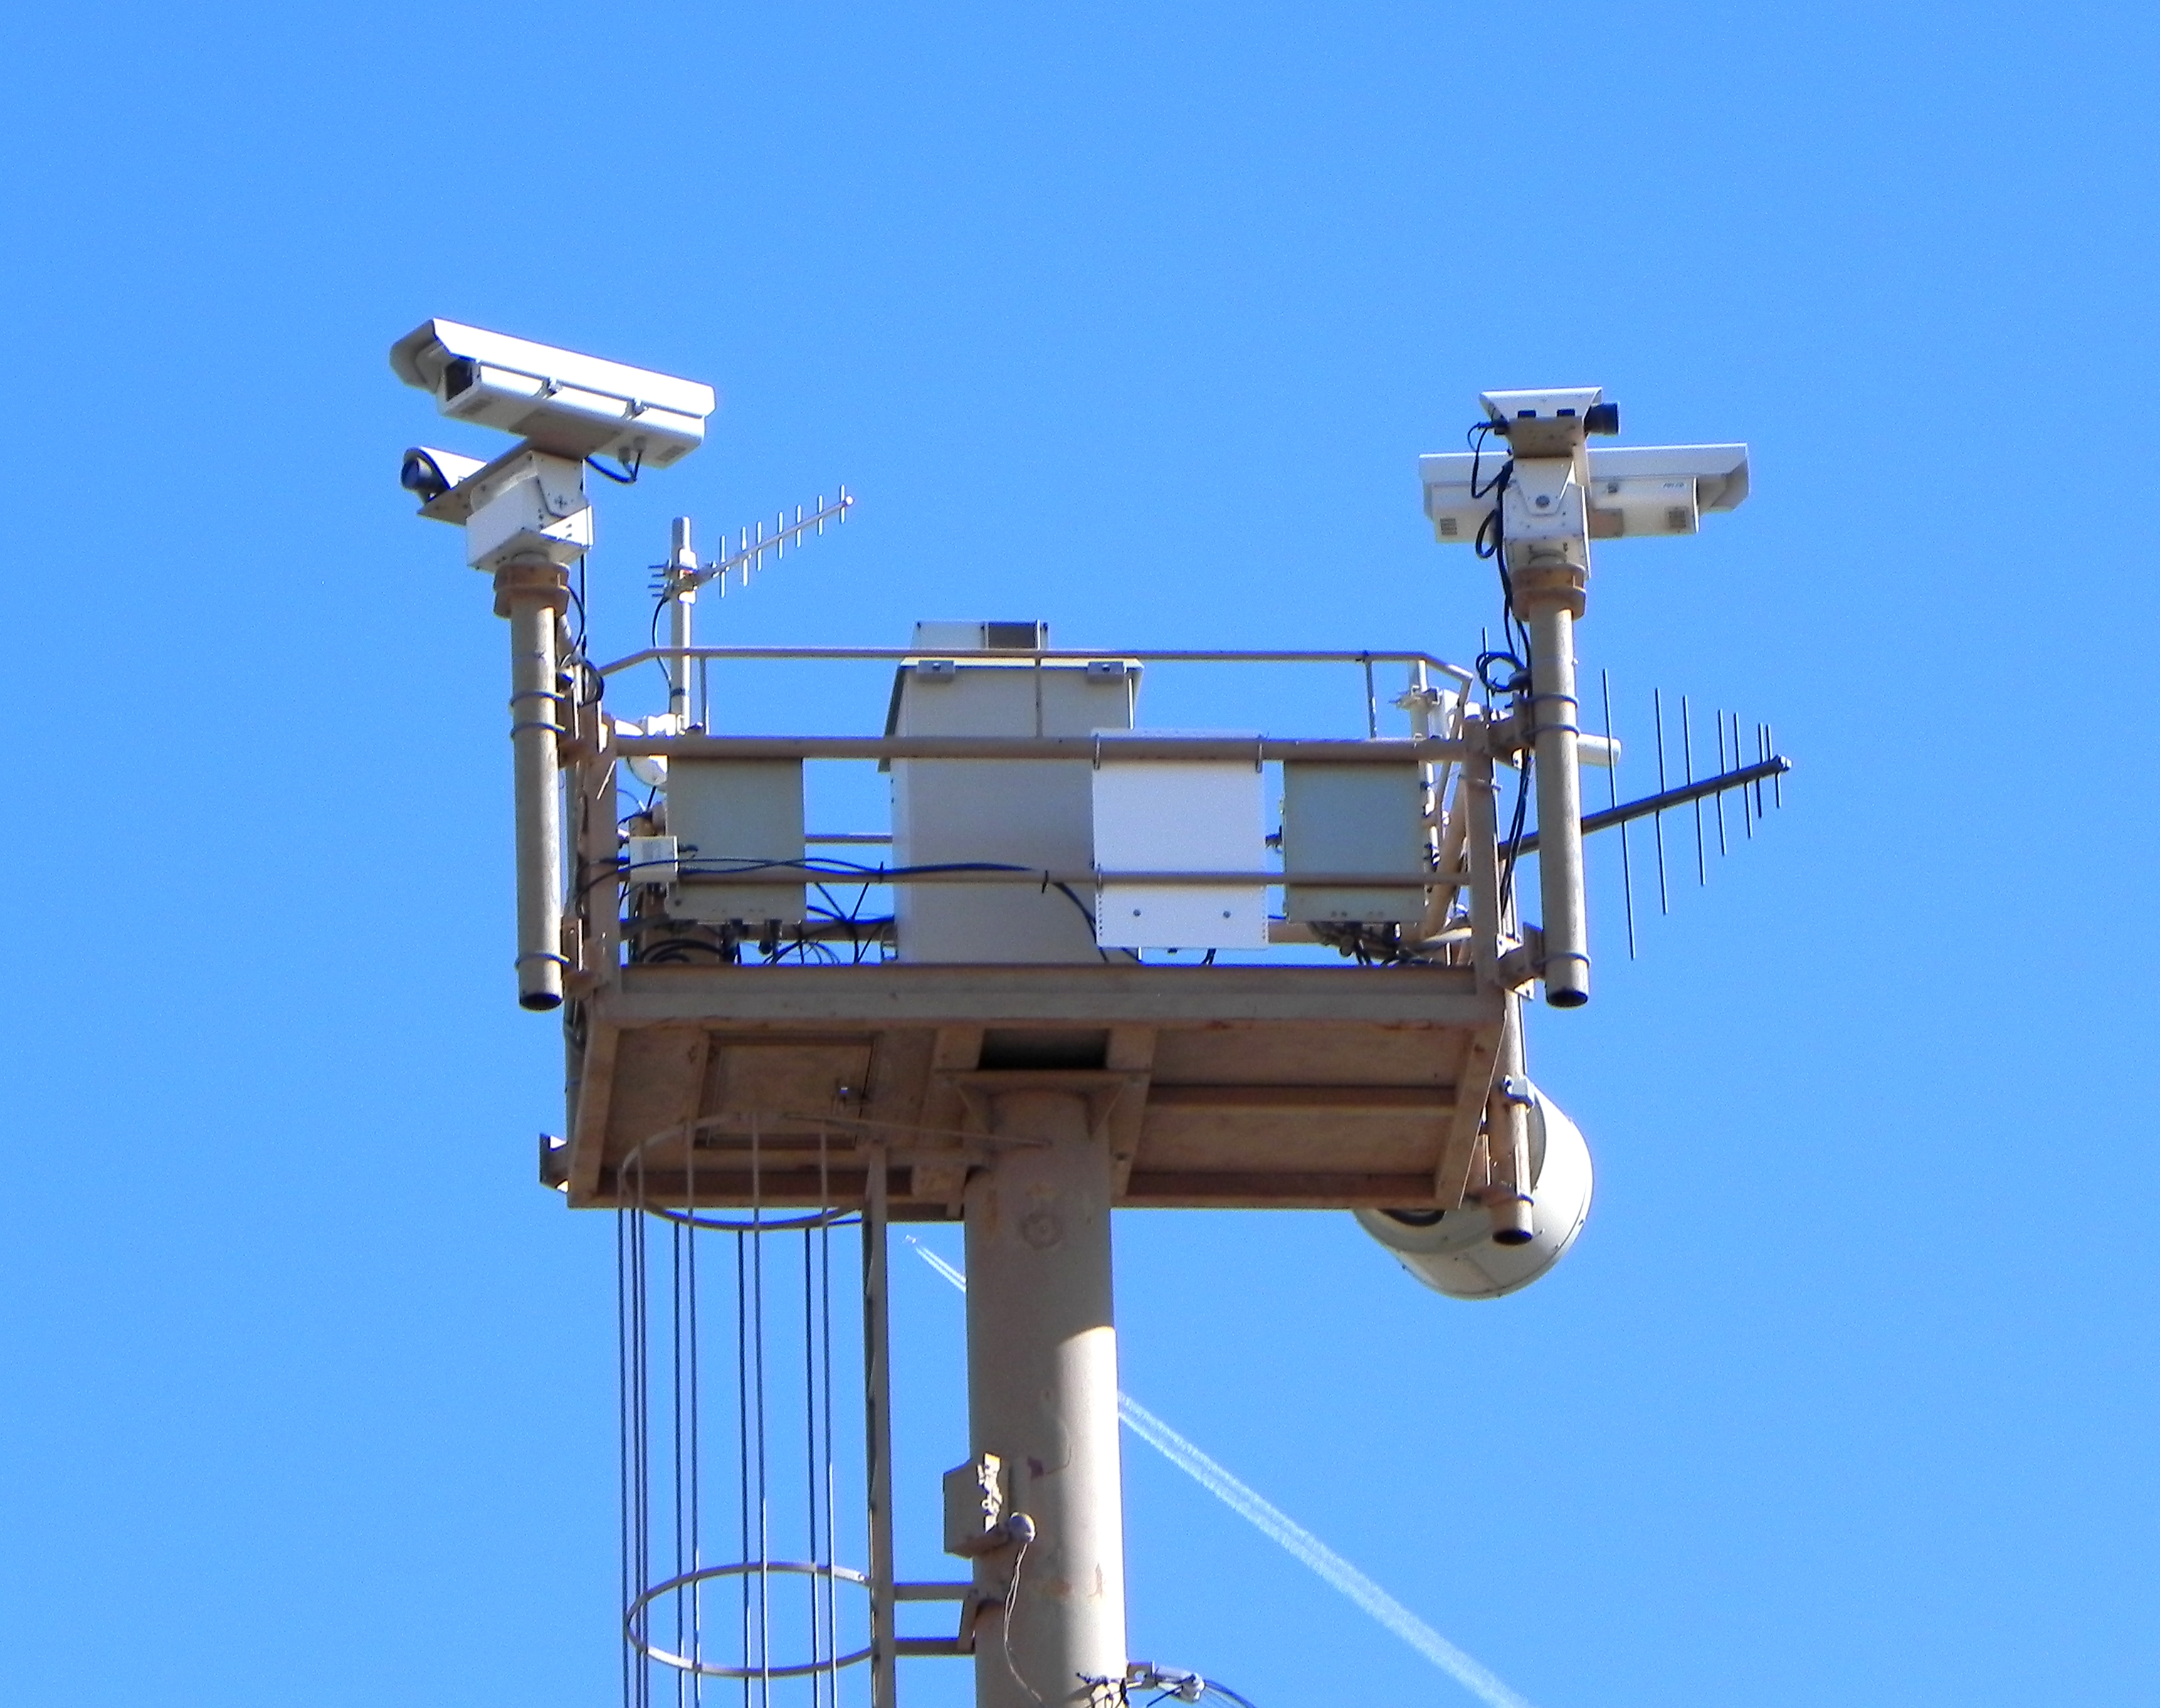 massive tower of surveillance equipment